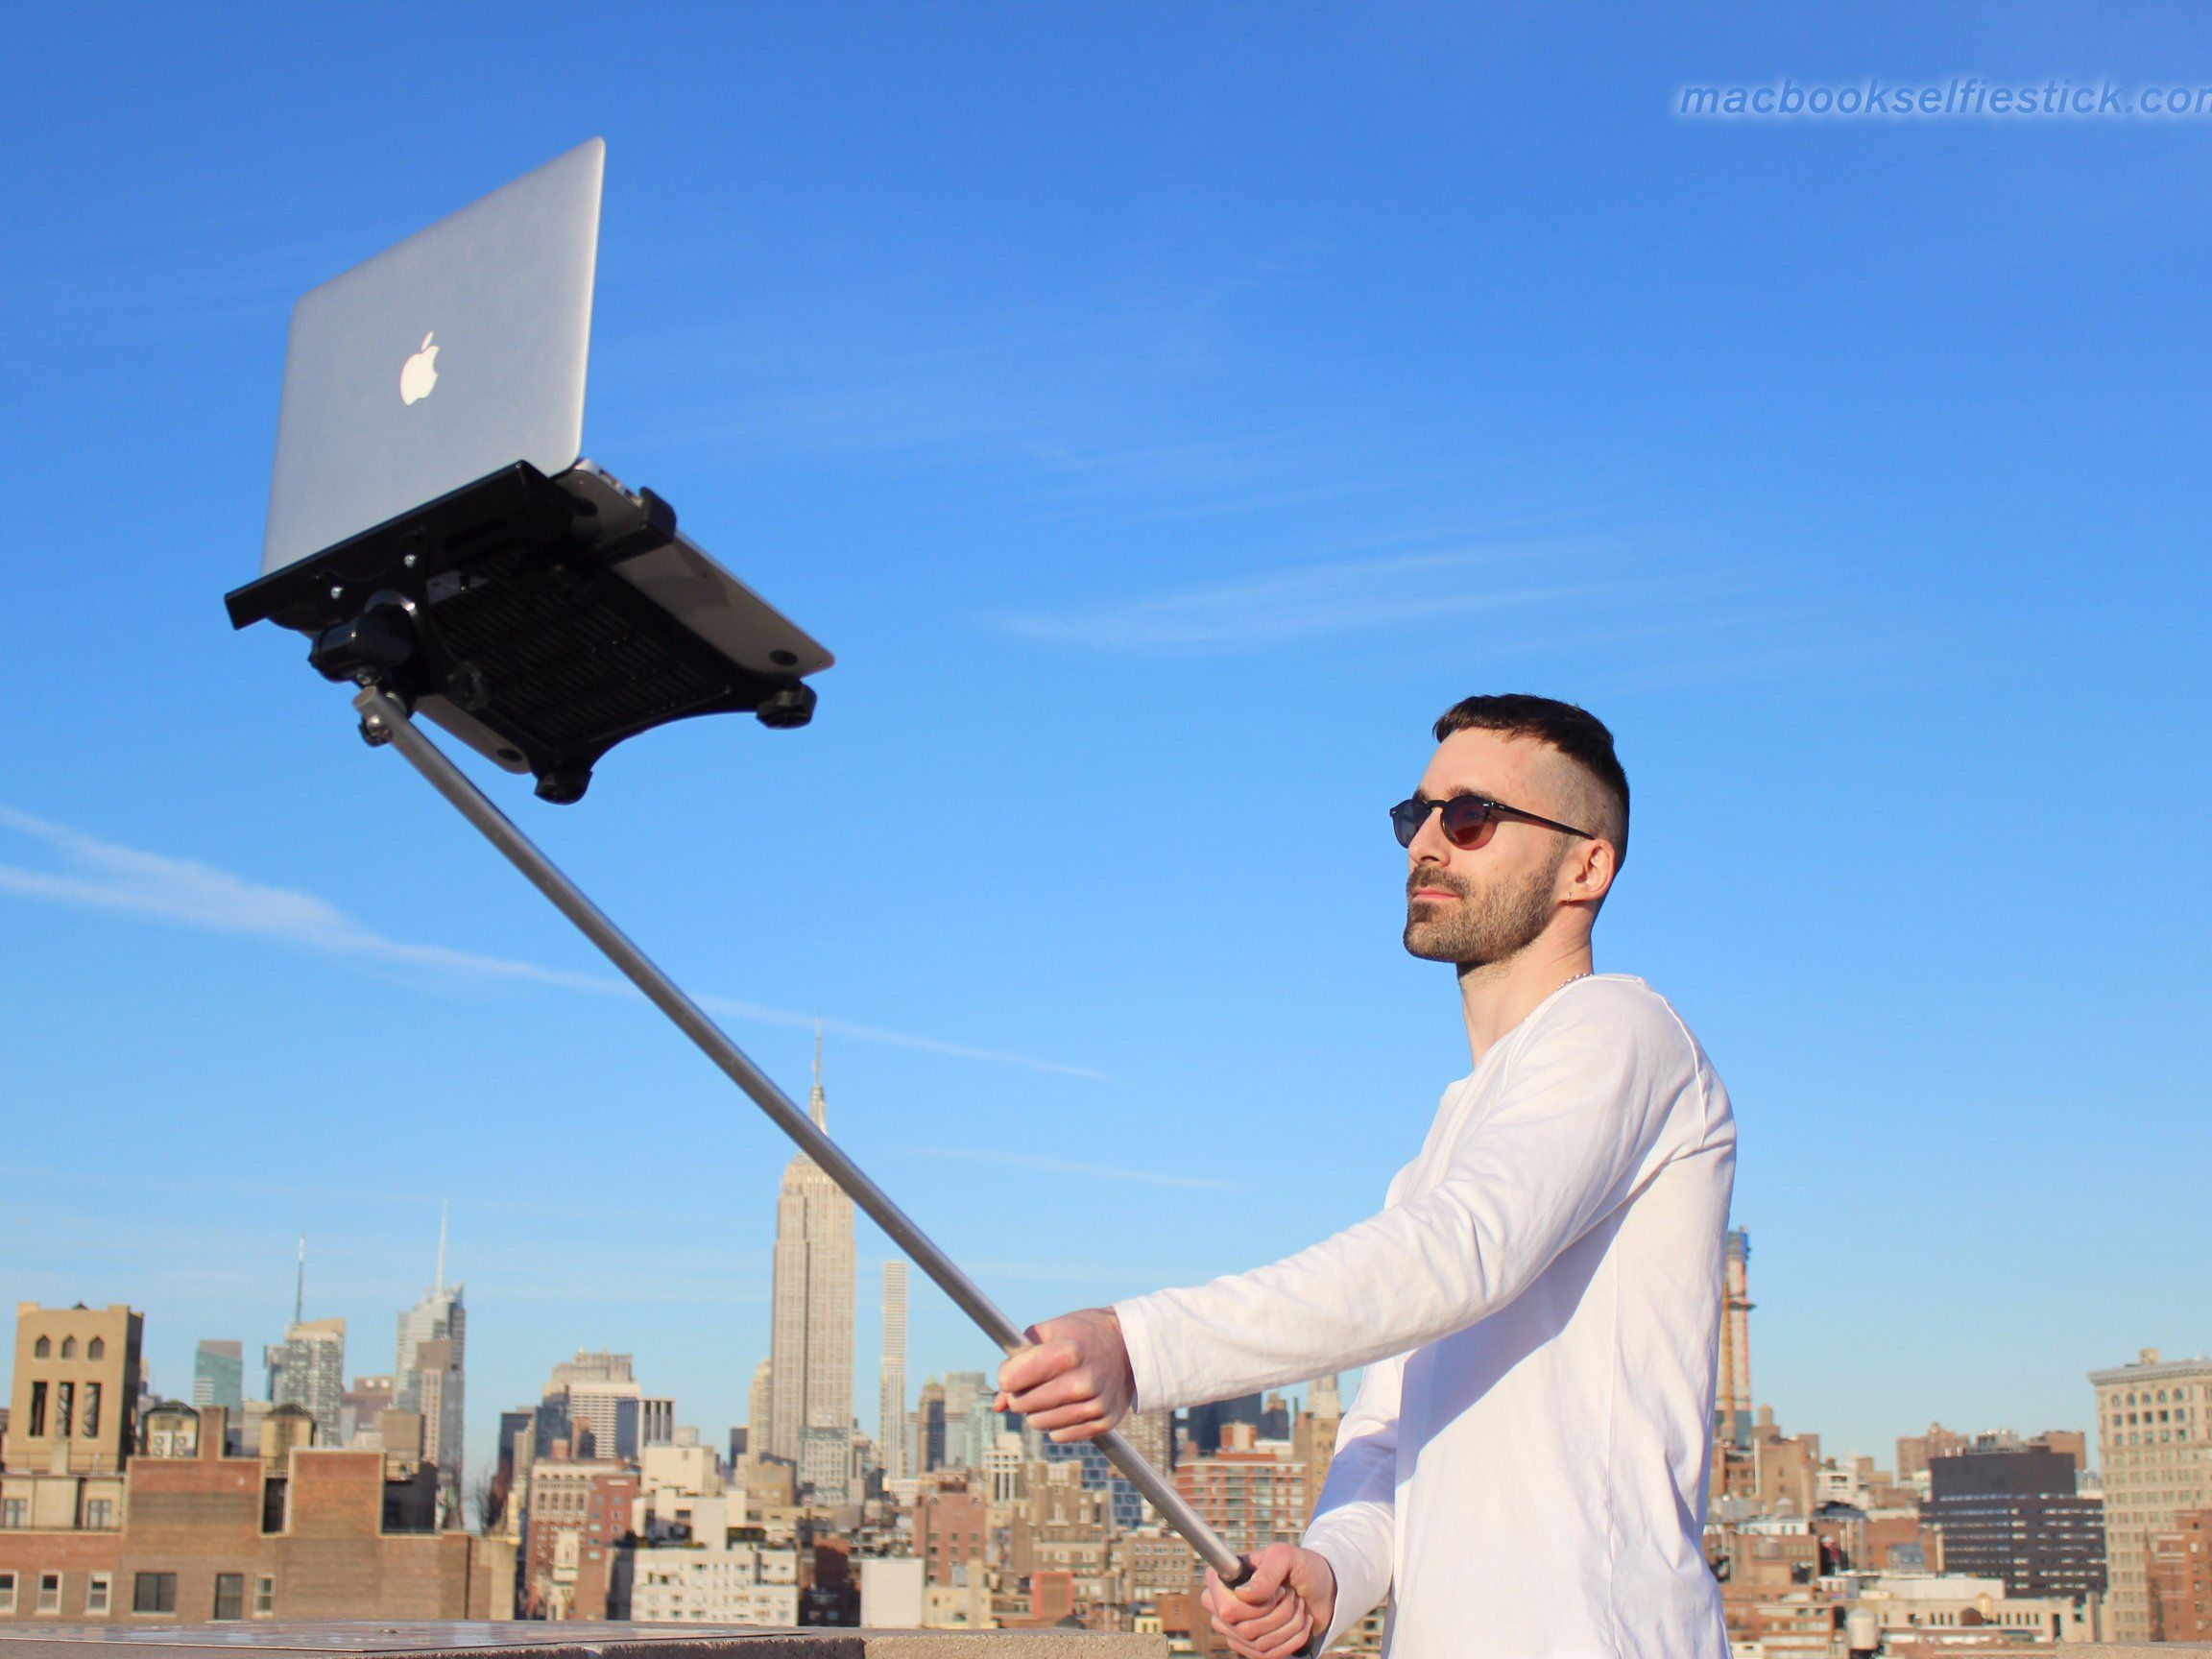 A giant selfie stick for your MacBook — just what you've always wanted!